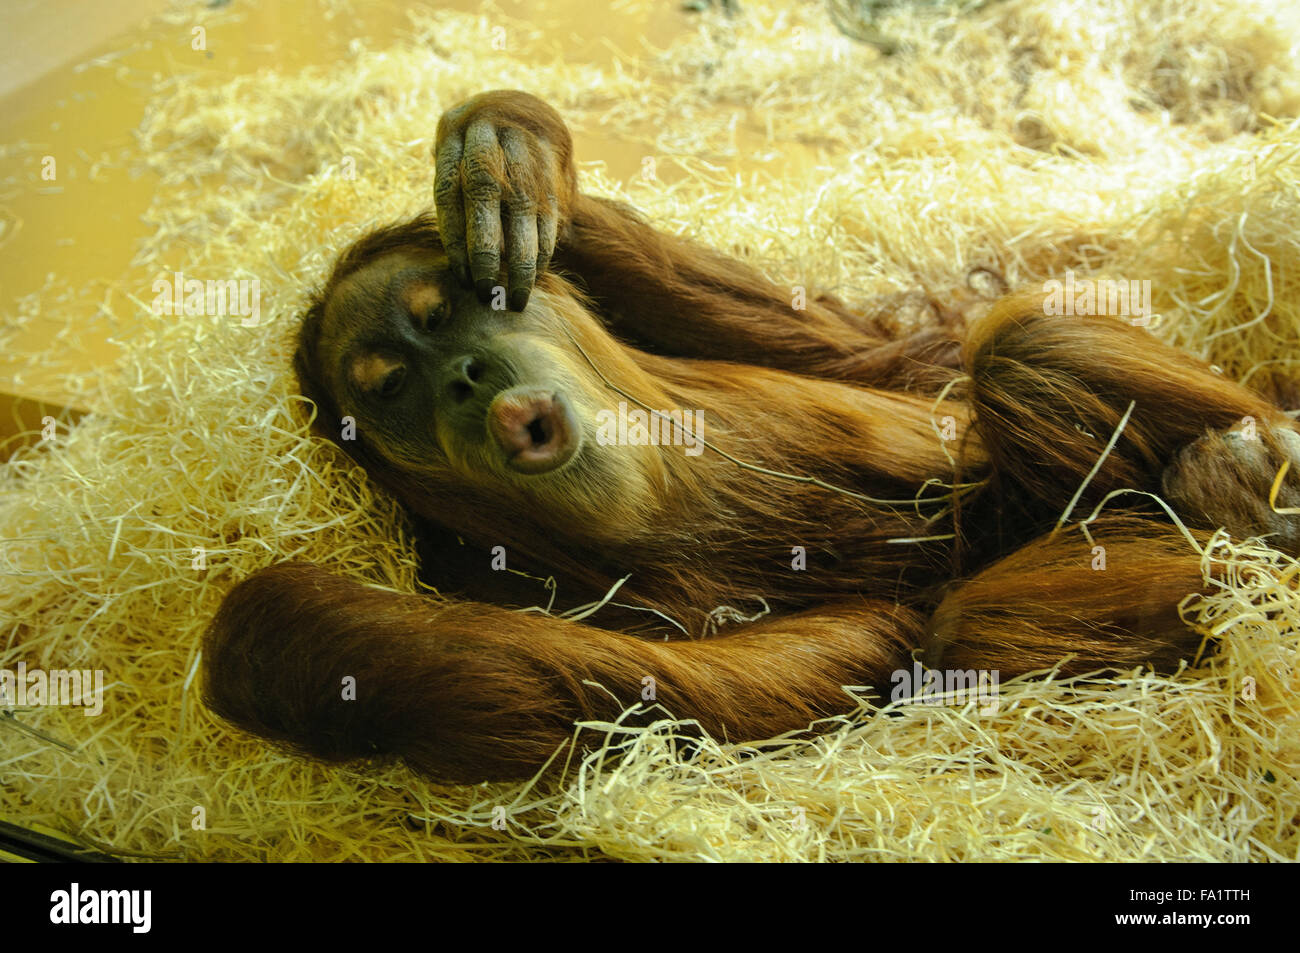 Sumatran orangutan (Pongo abelii) giving a kiss Stock Photo